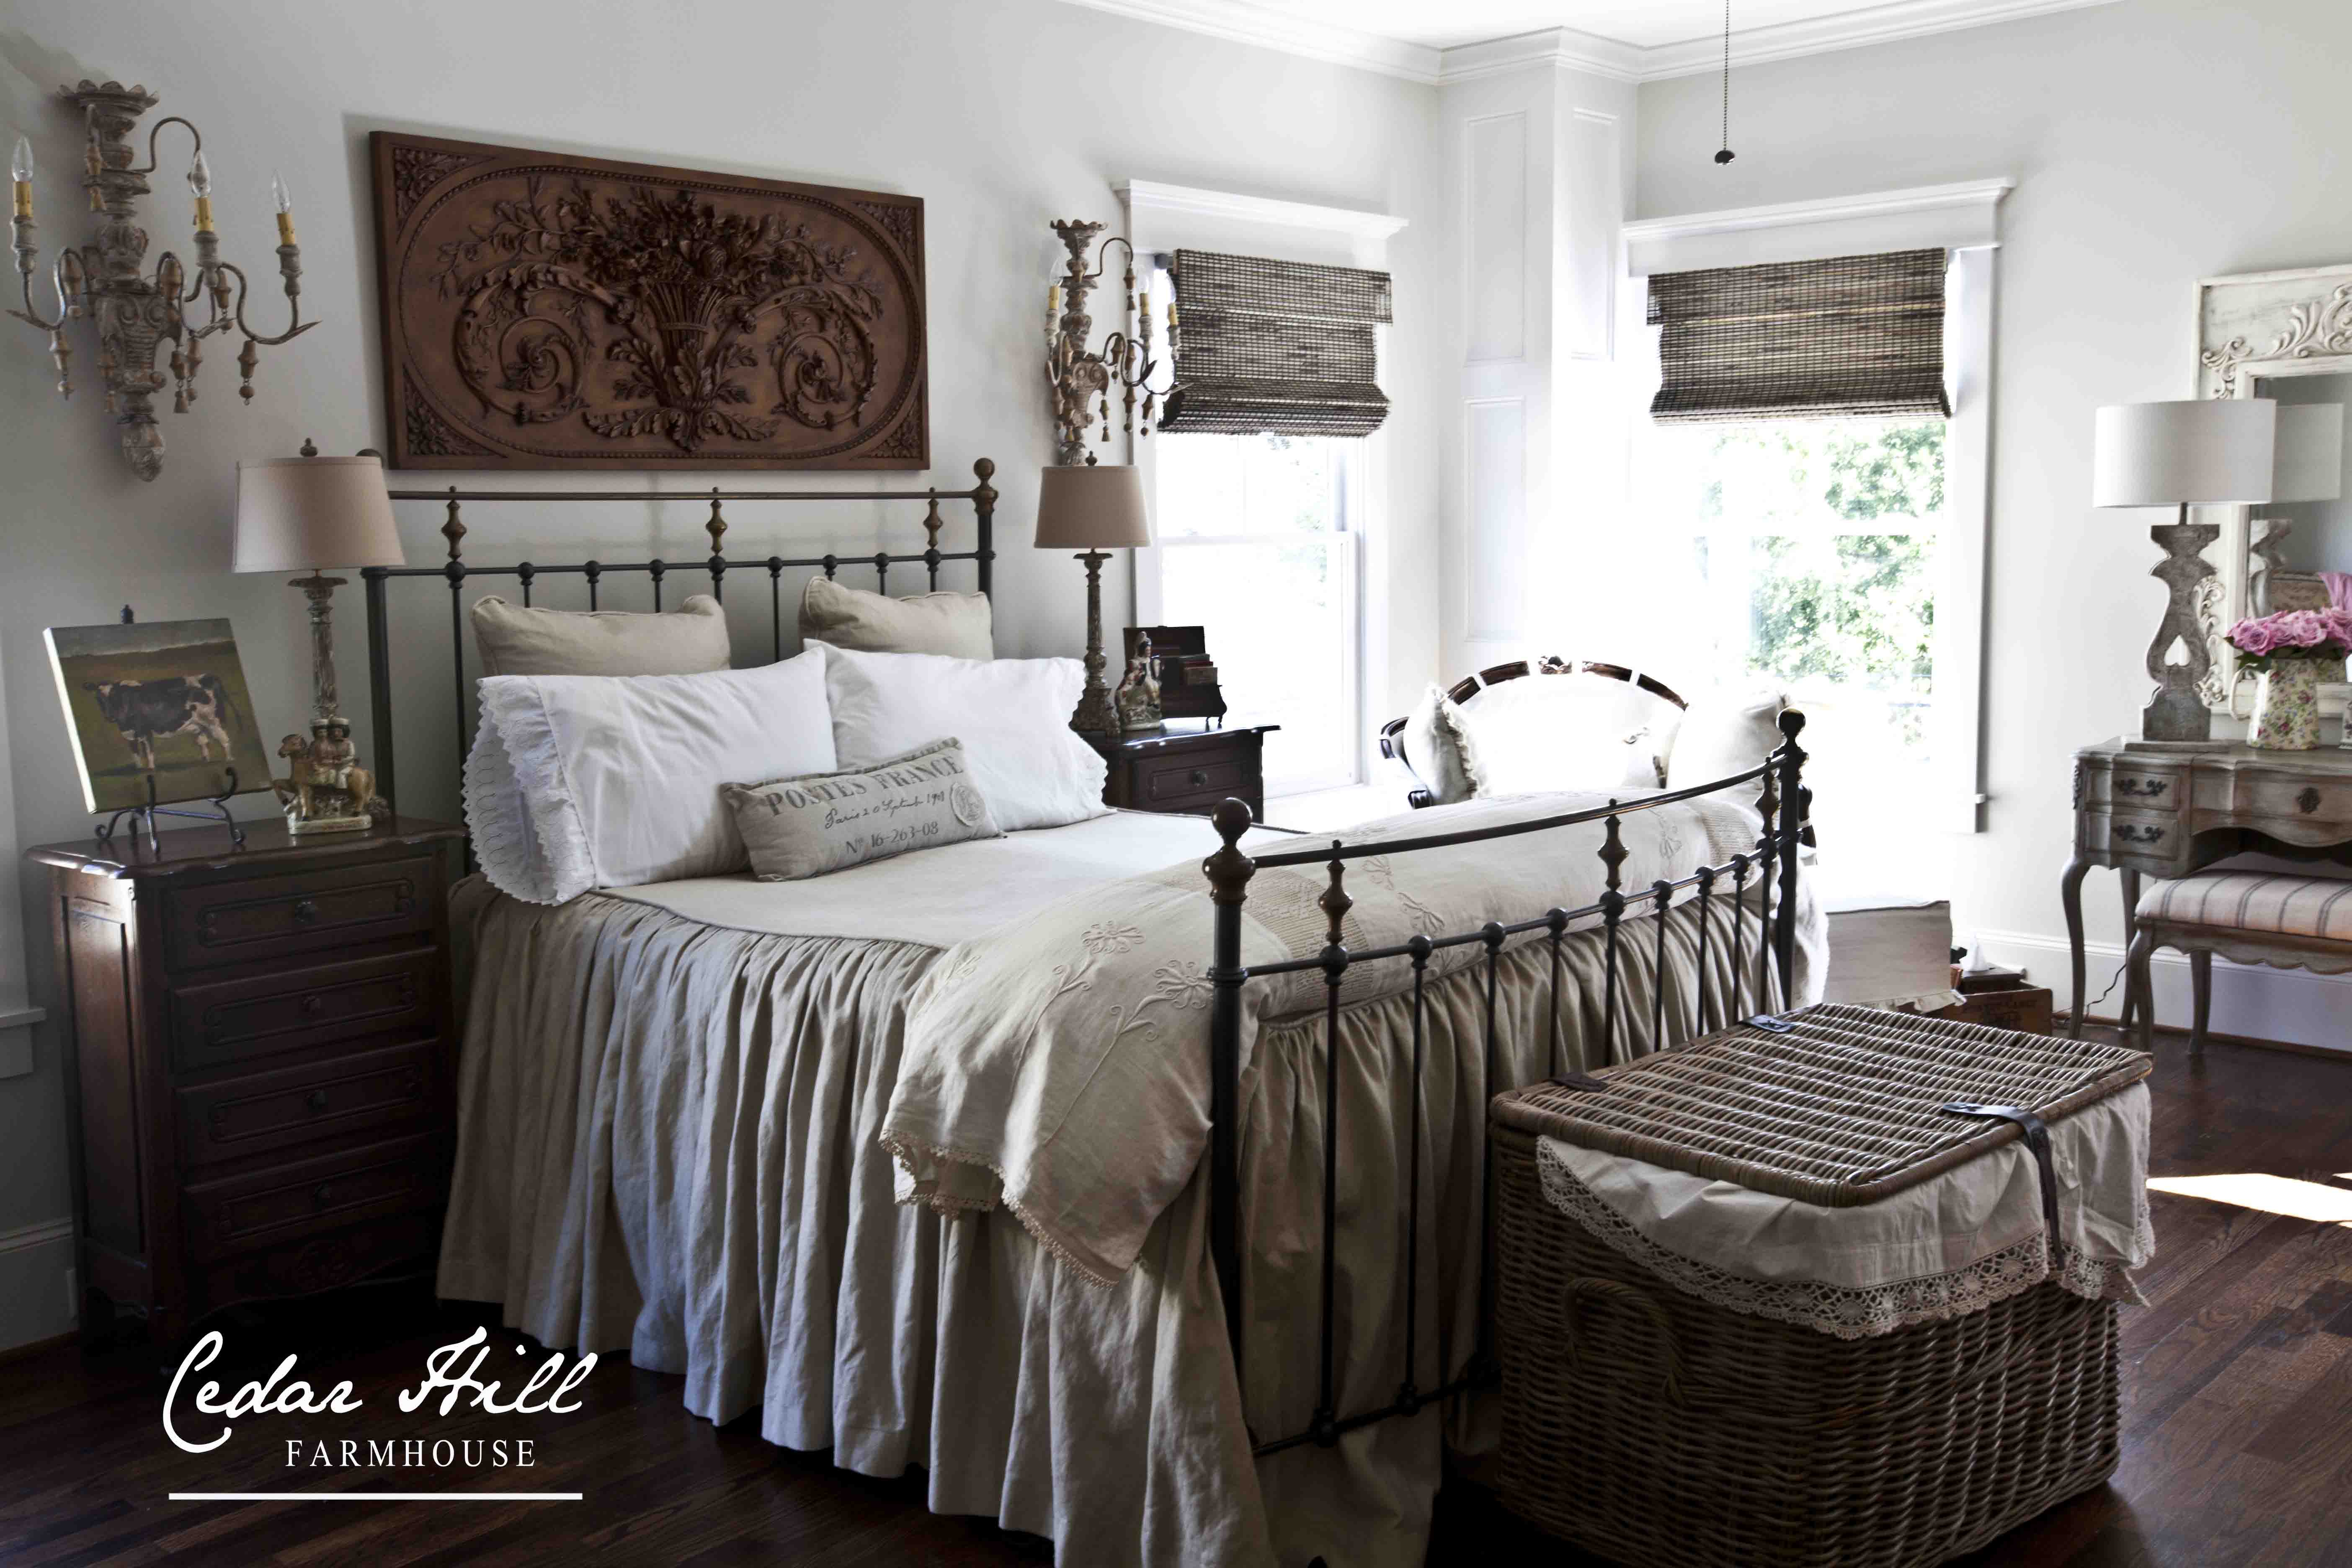 Top ten elegant french farmhouse bedroom for French farmhouse bed